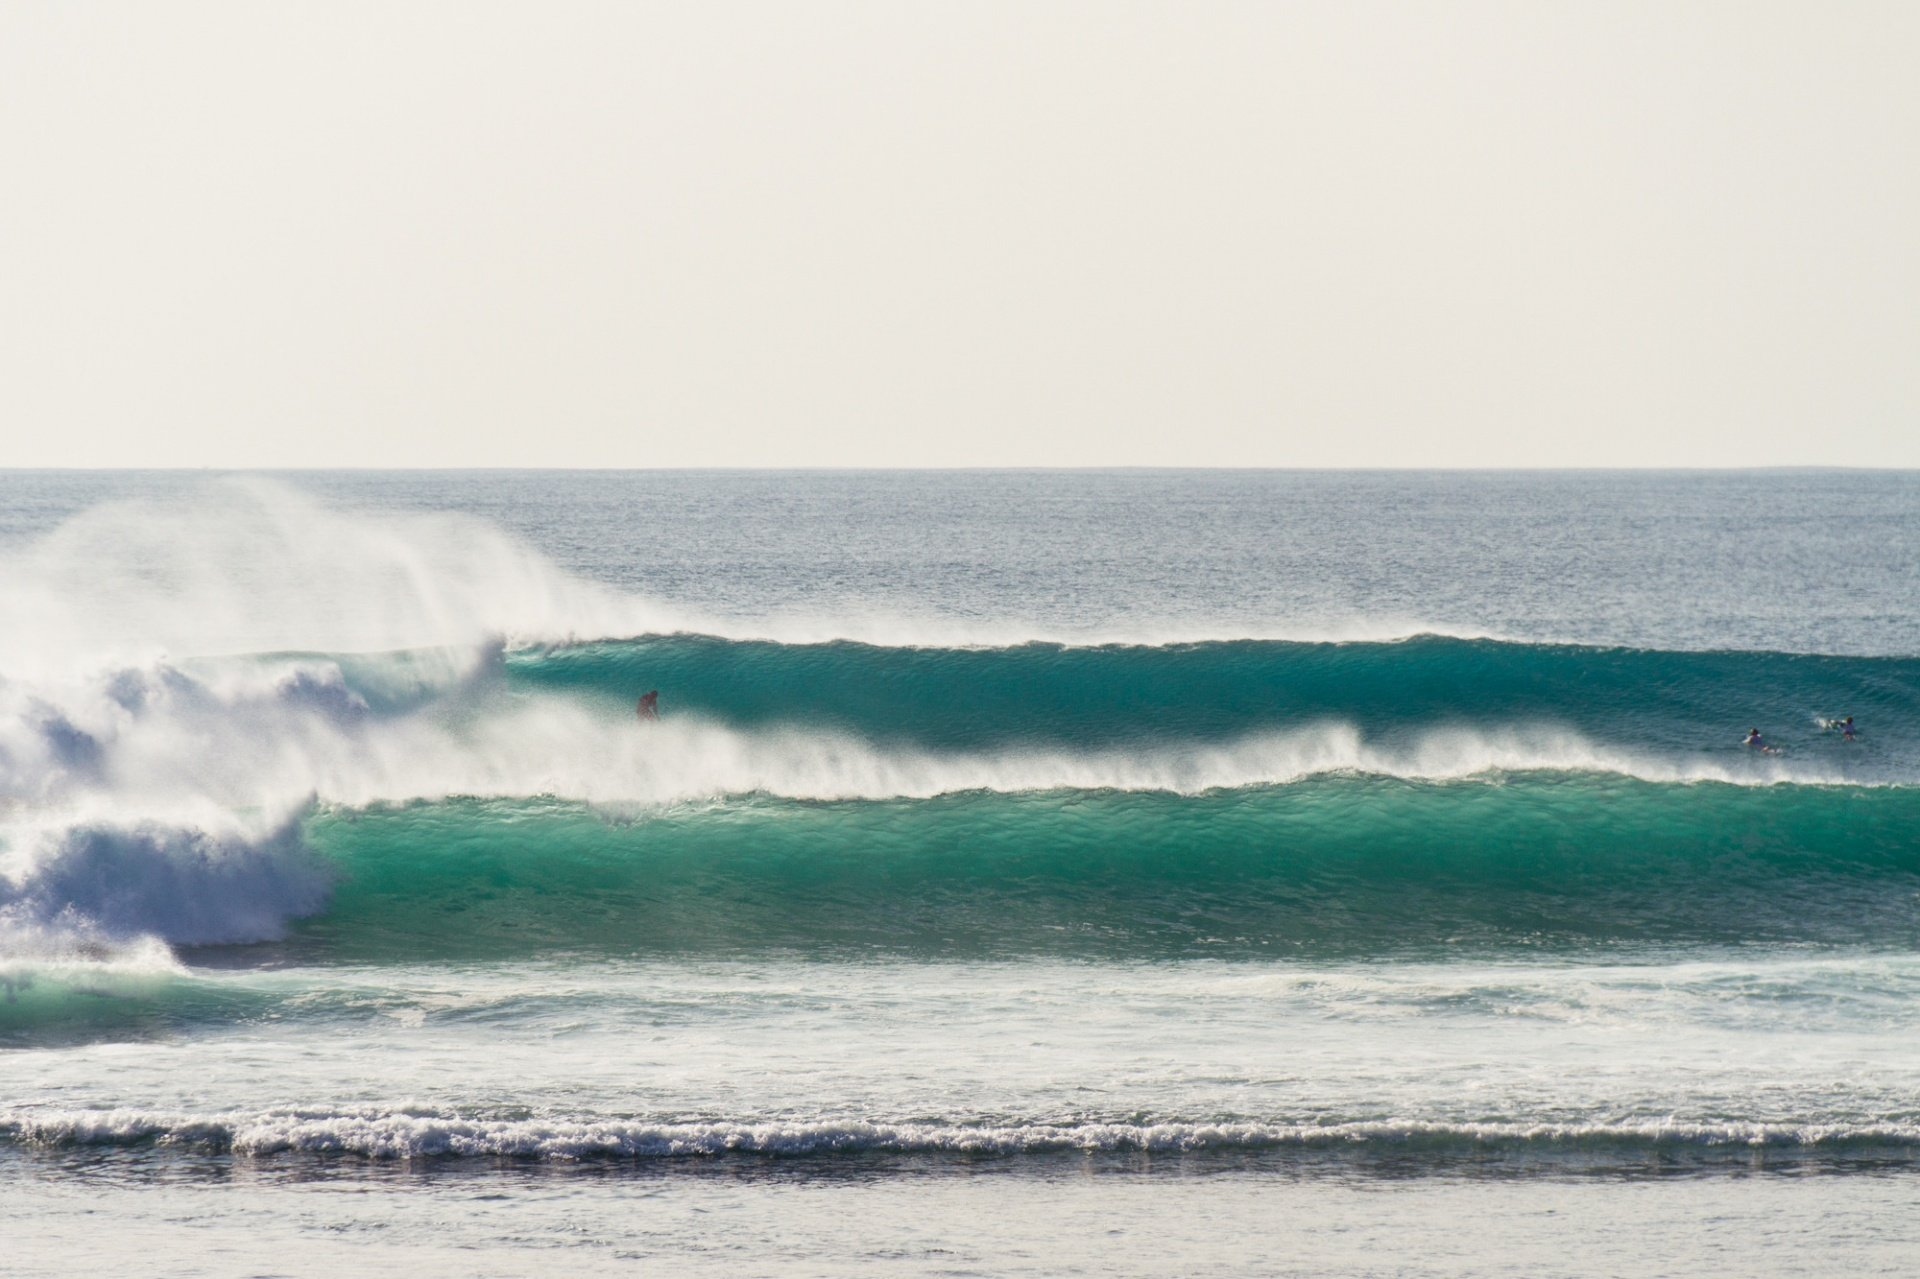 chris immler's photo of Balangan